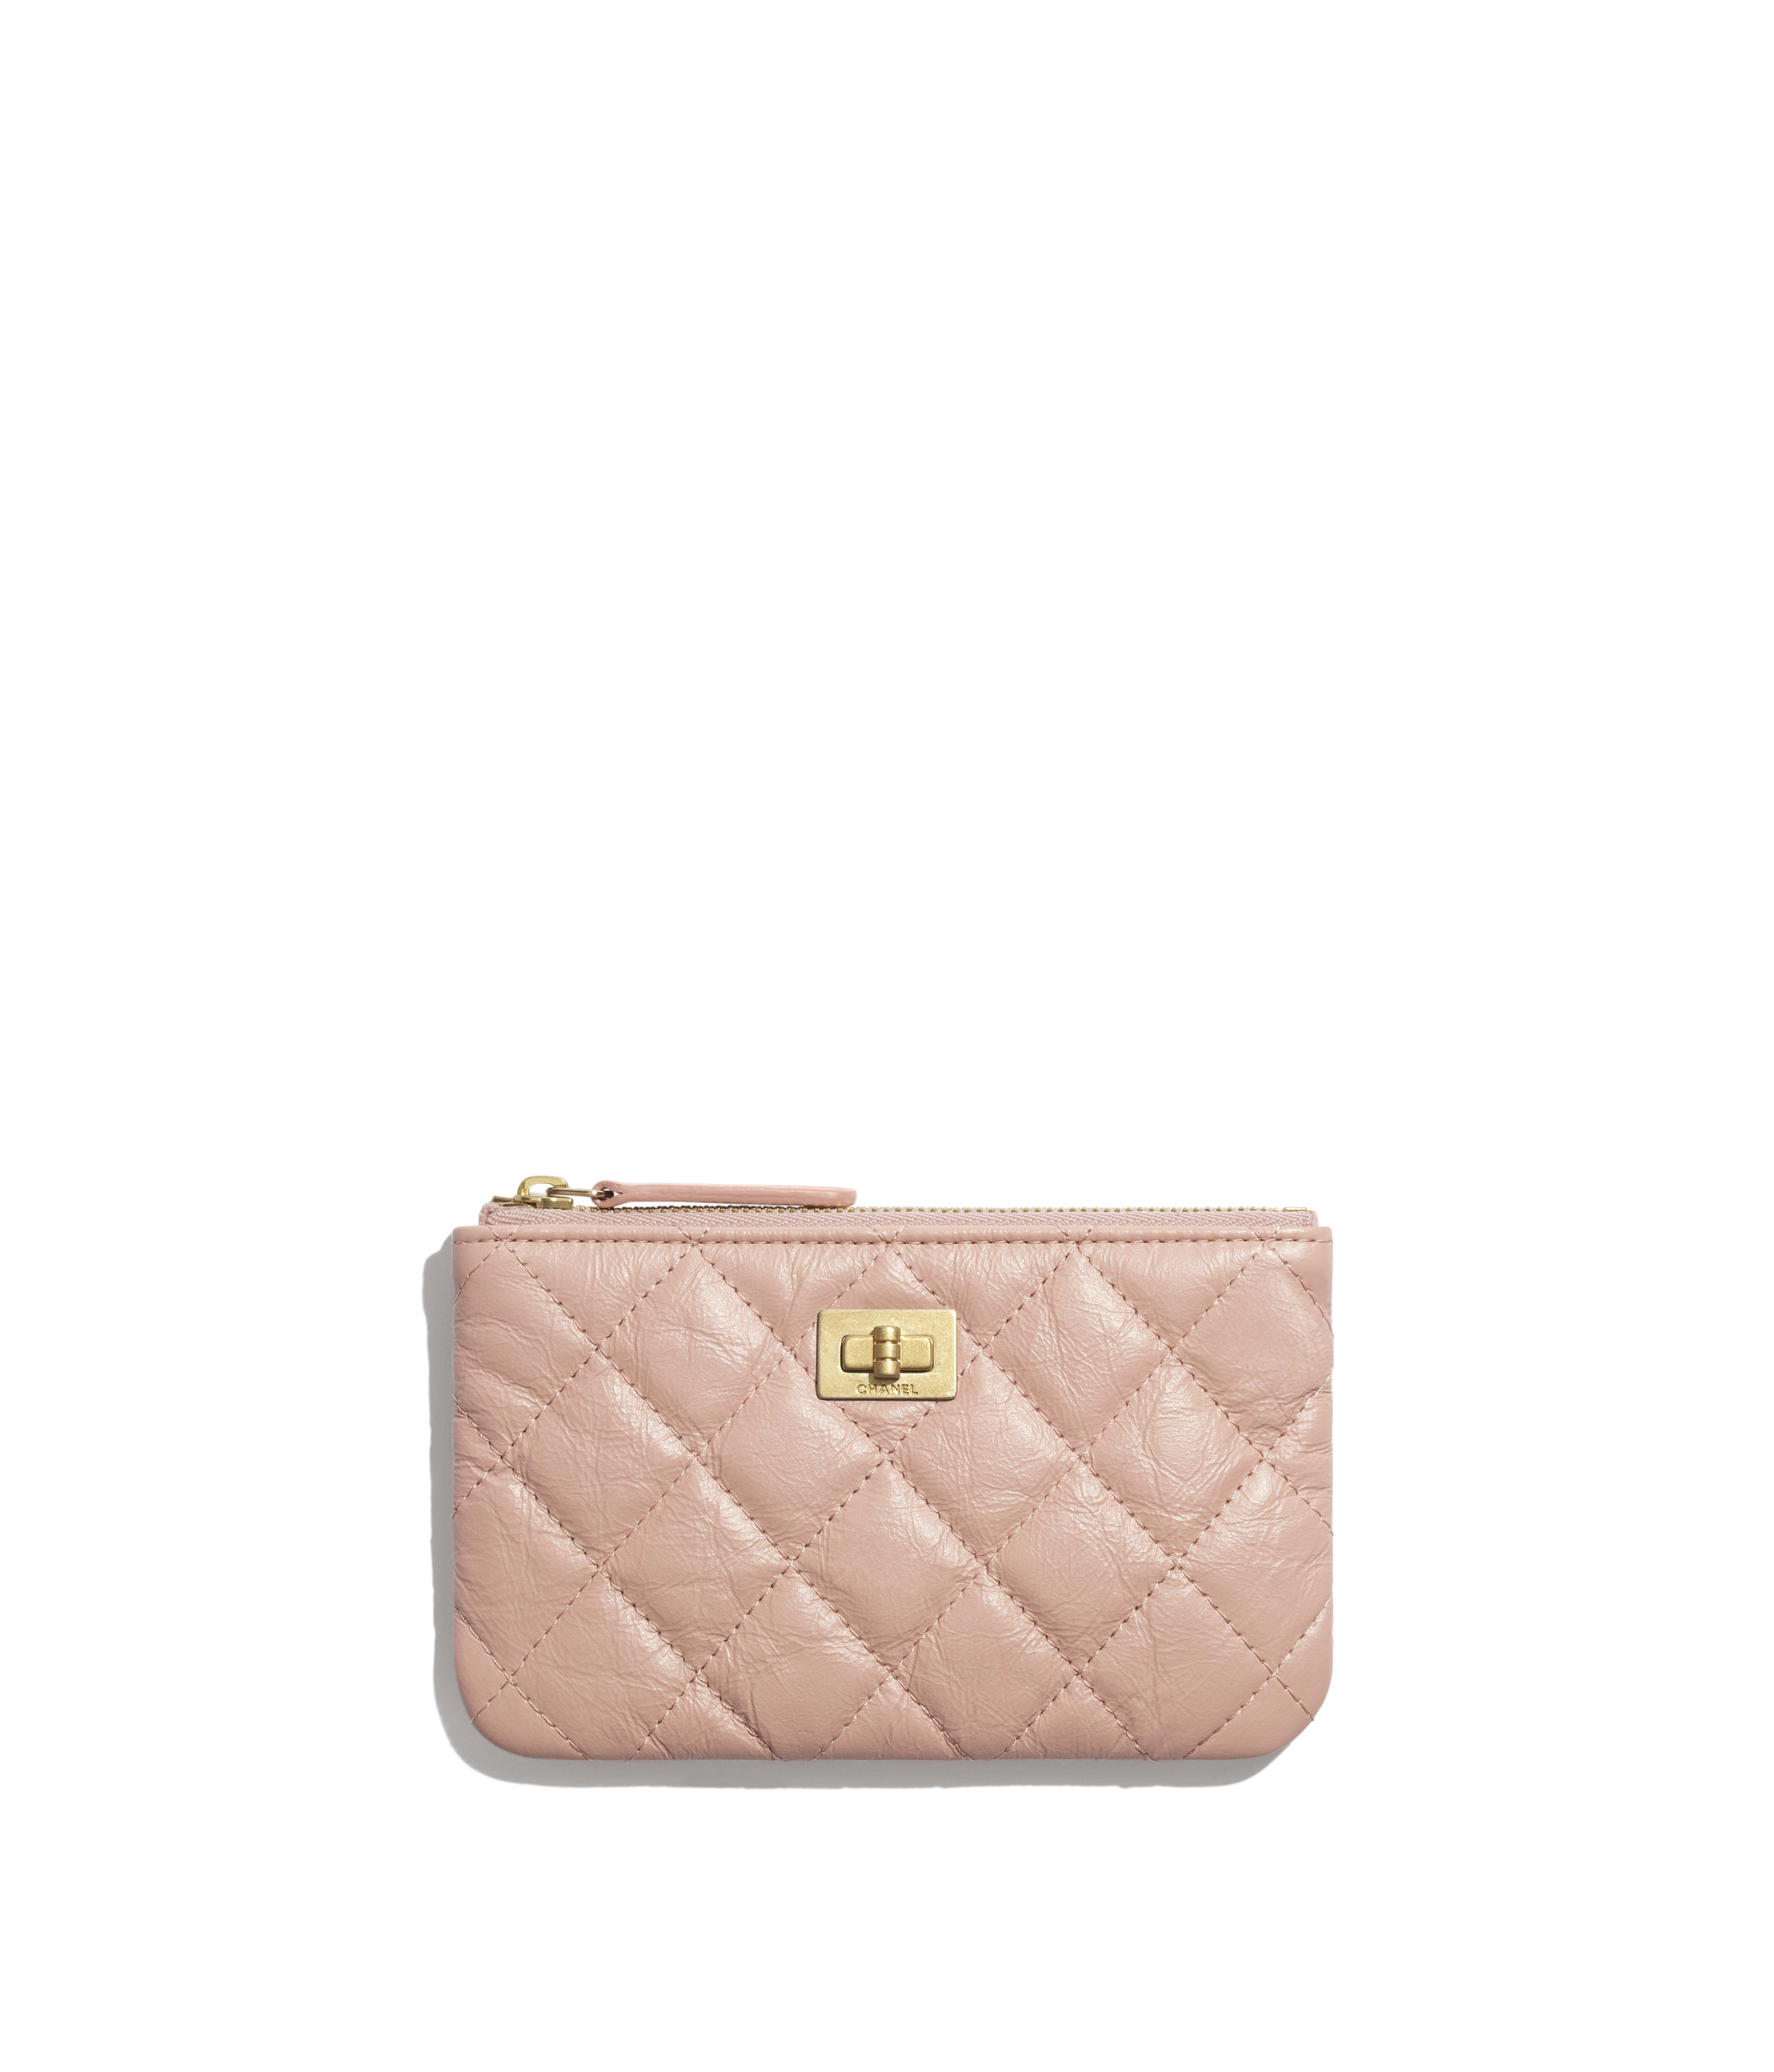 0f34812b1f3f Small 2.55 Pouch Aged Calfskin & Gold-Tone Metal, Light Pink Ref.  A82724Y04634N0430